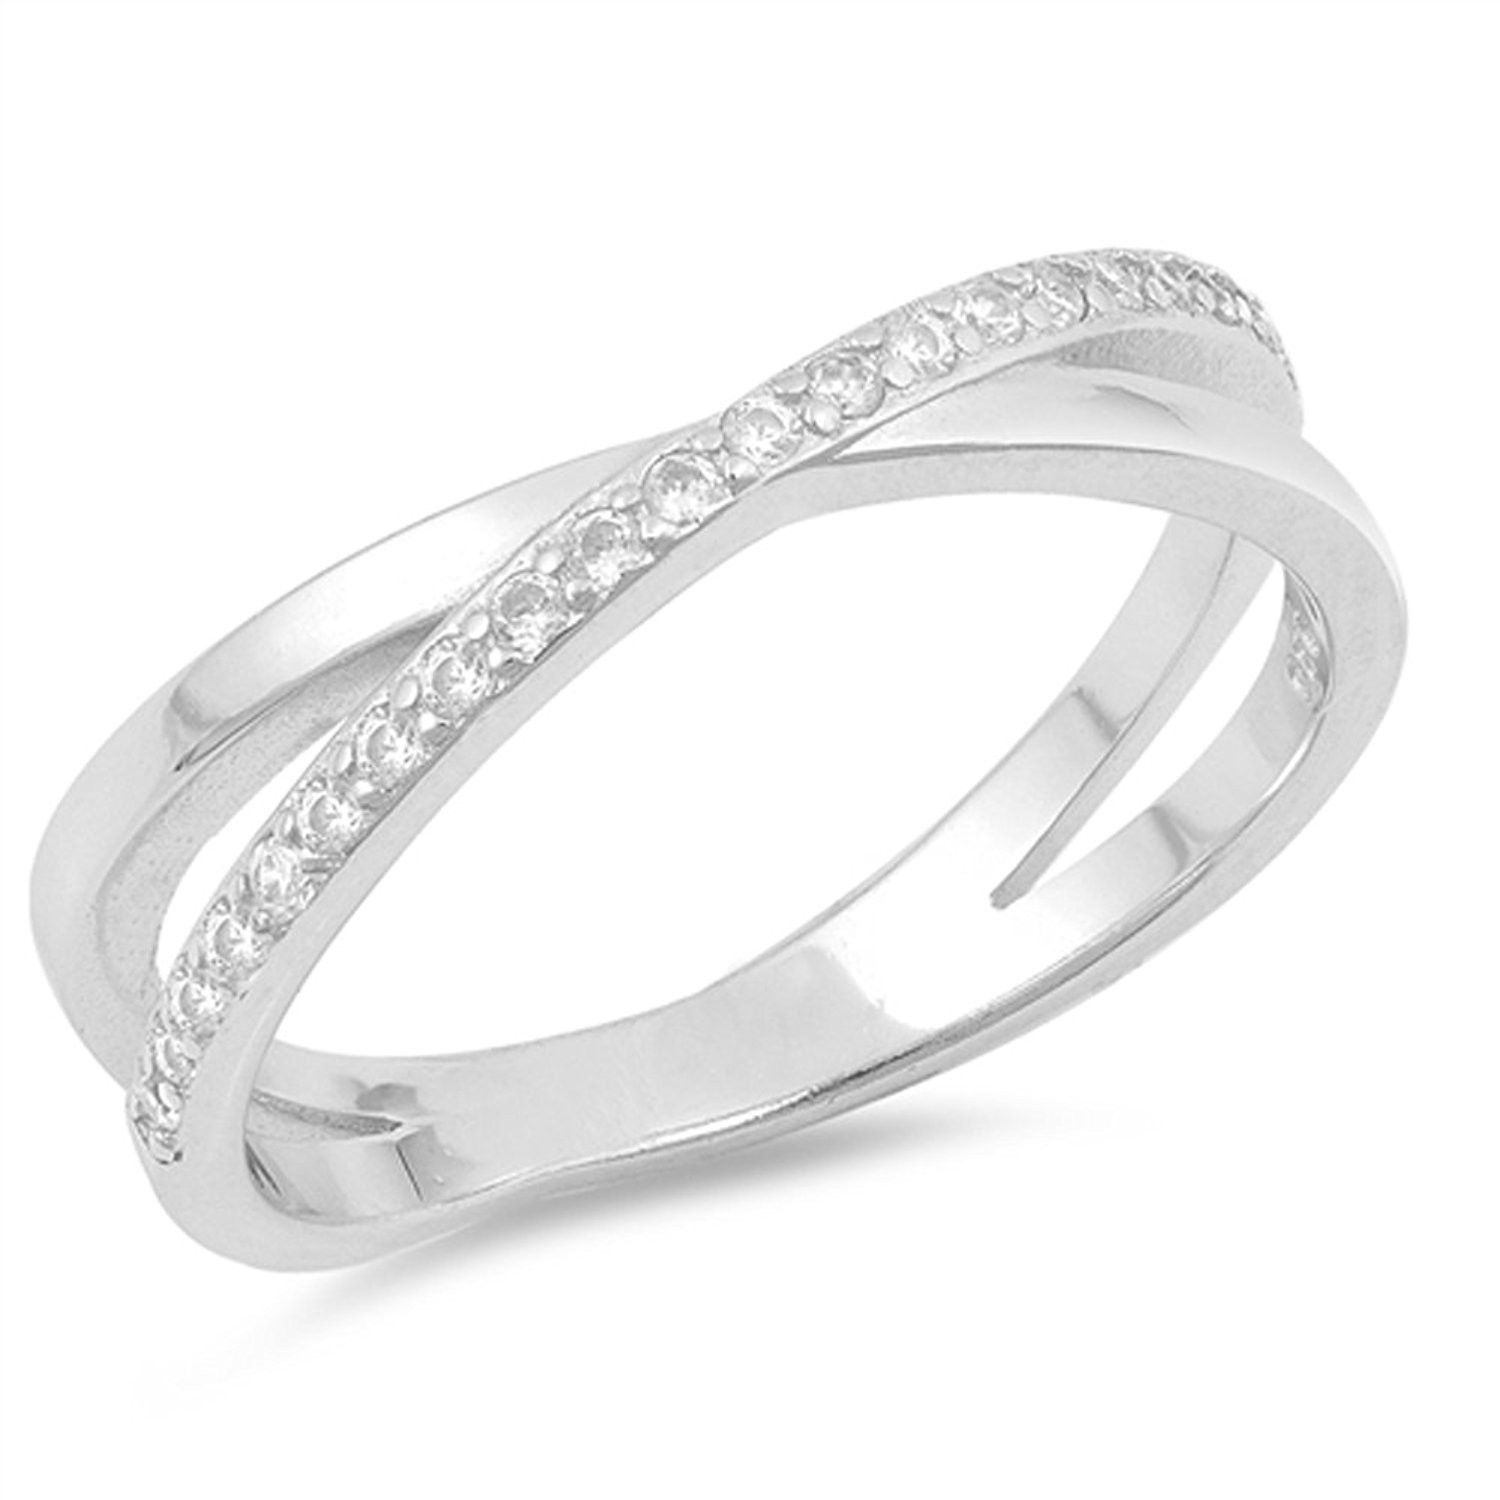 Round Infinity Knot Ring New .925 Sterling Silver Band